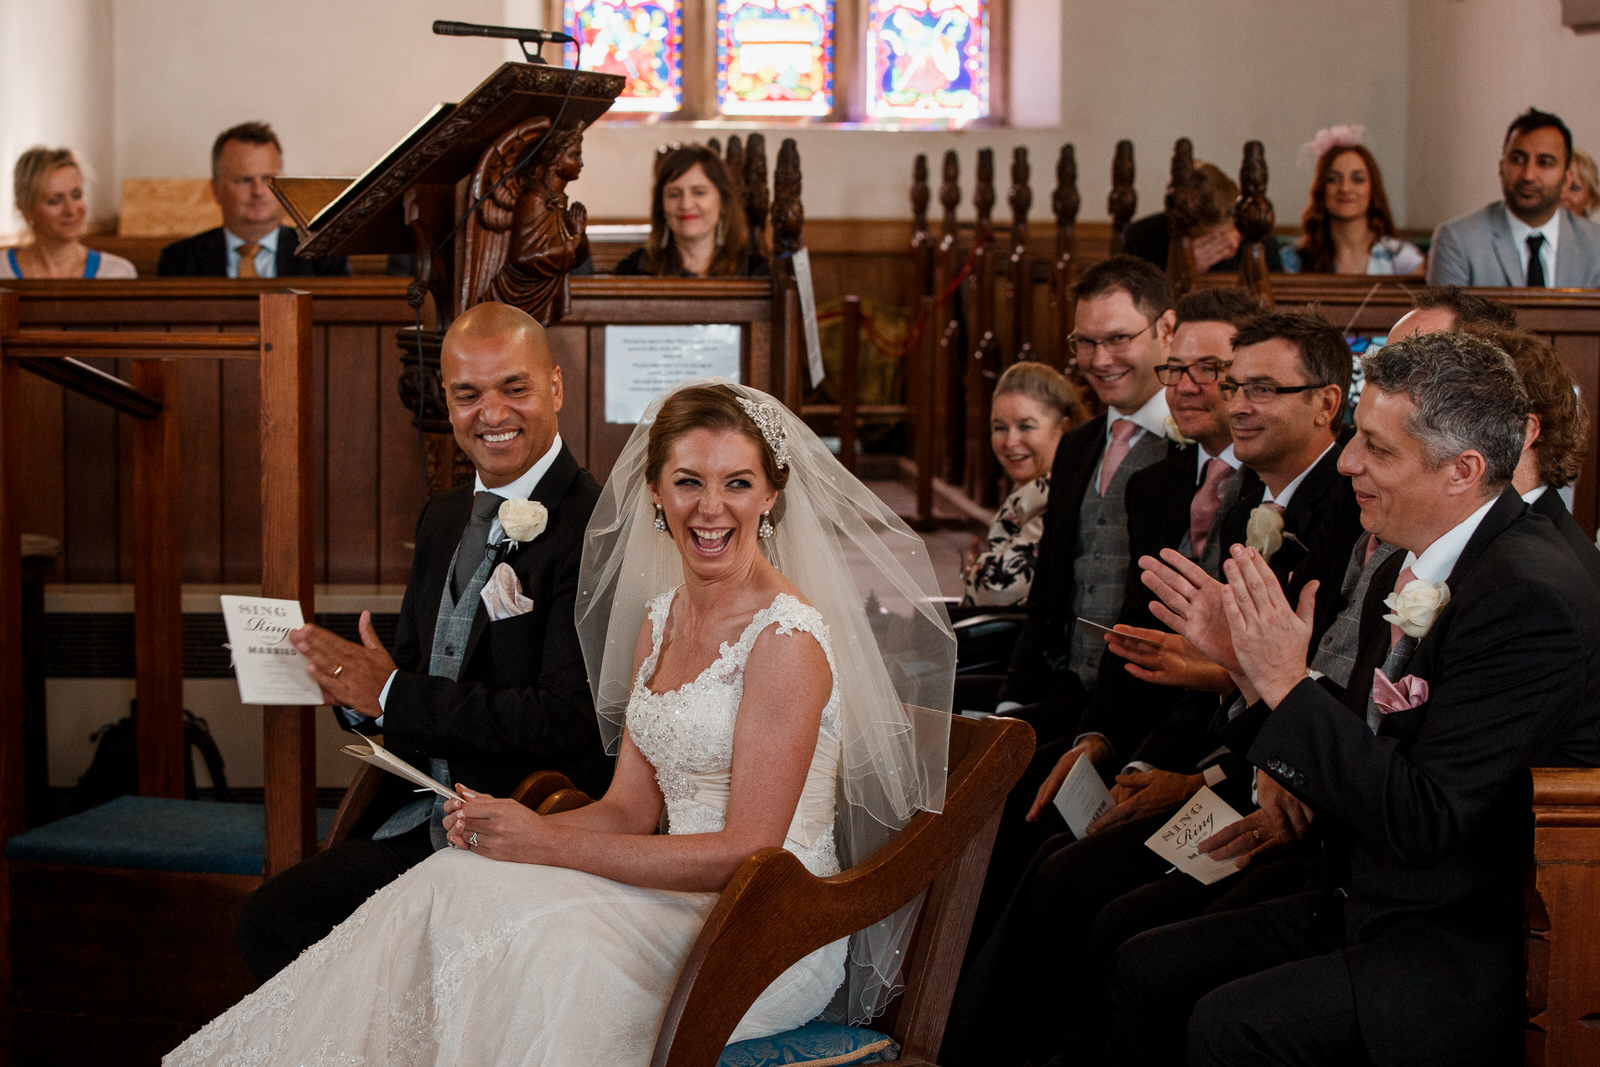 bride smiling in church